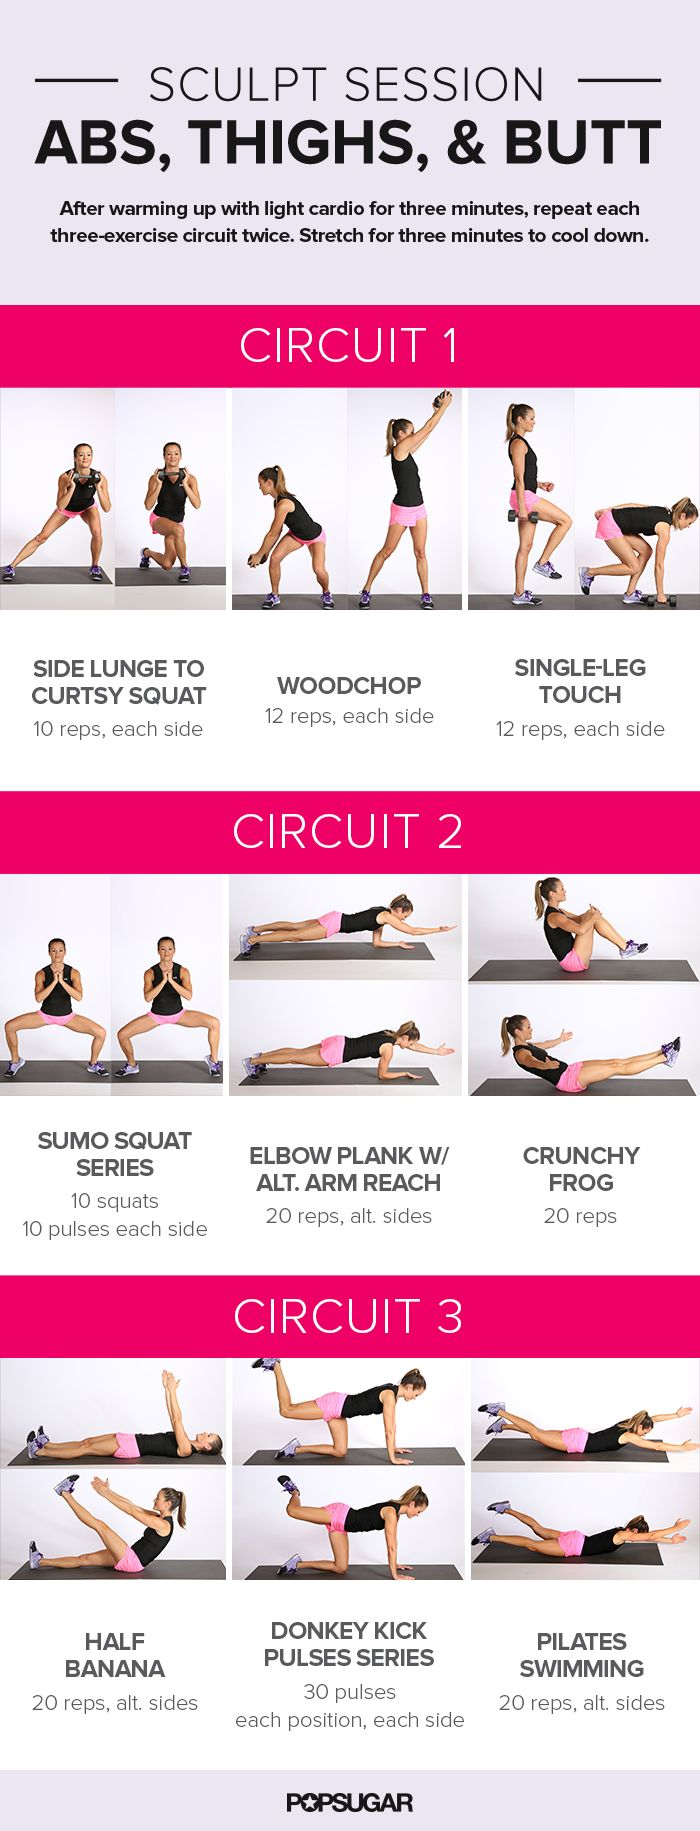 Whether you're at a complete loss for how to start working out, or your stale sessions could use a little spicing up, we've got a workout poster for you. If you're looking for strength training, cardio, and combos of the two, you'll want to bookmark this for later so you can easily find these awesome kick-butt workouts on your phone or iPad. Or choose your favorites and print them out to take to the gym.